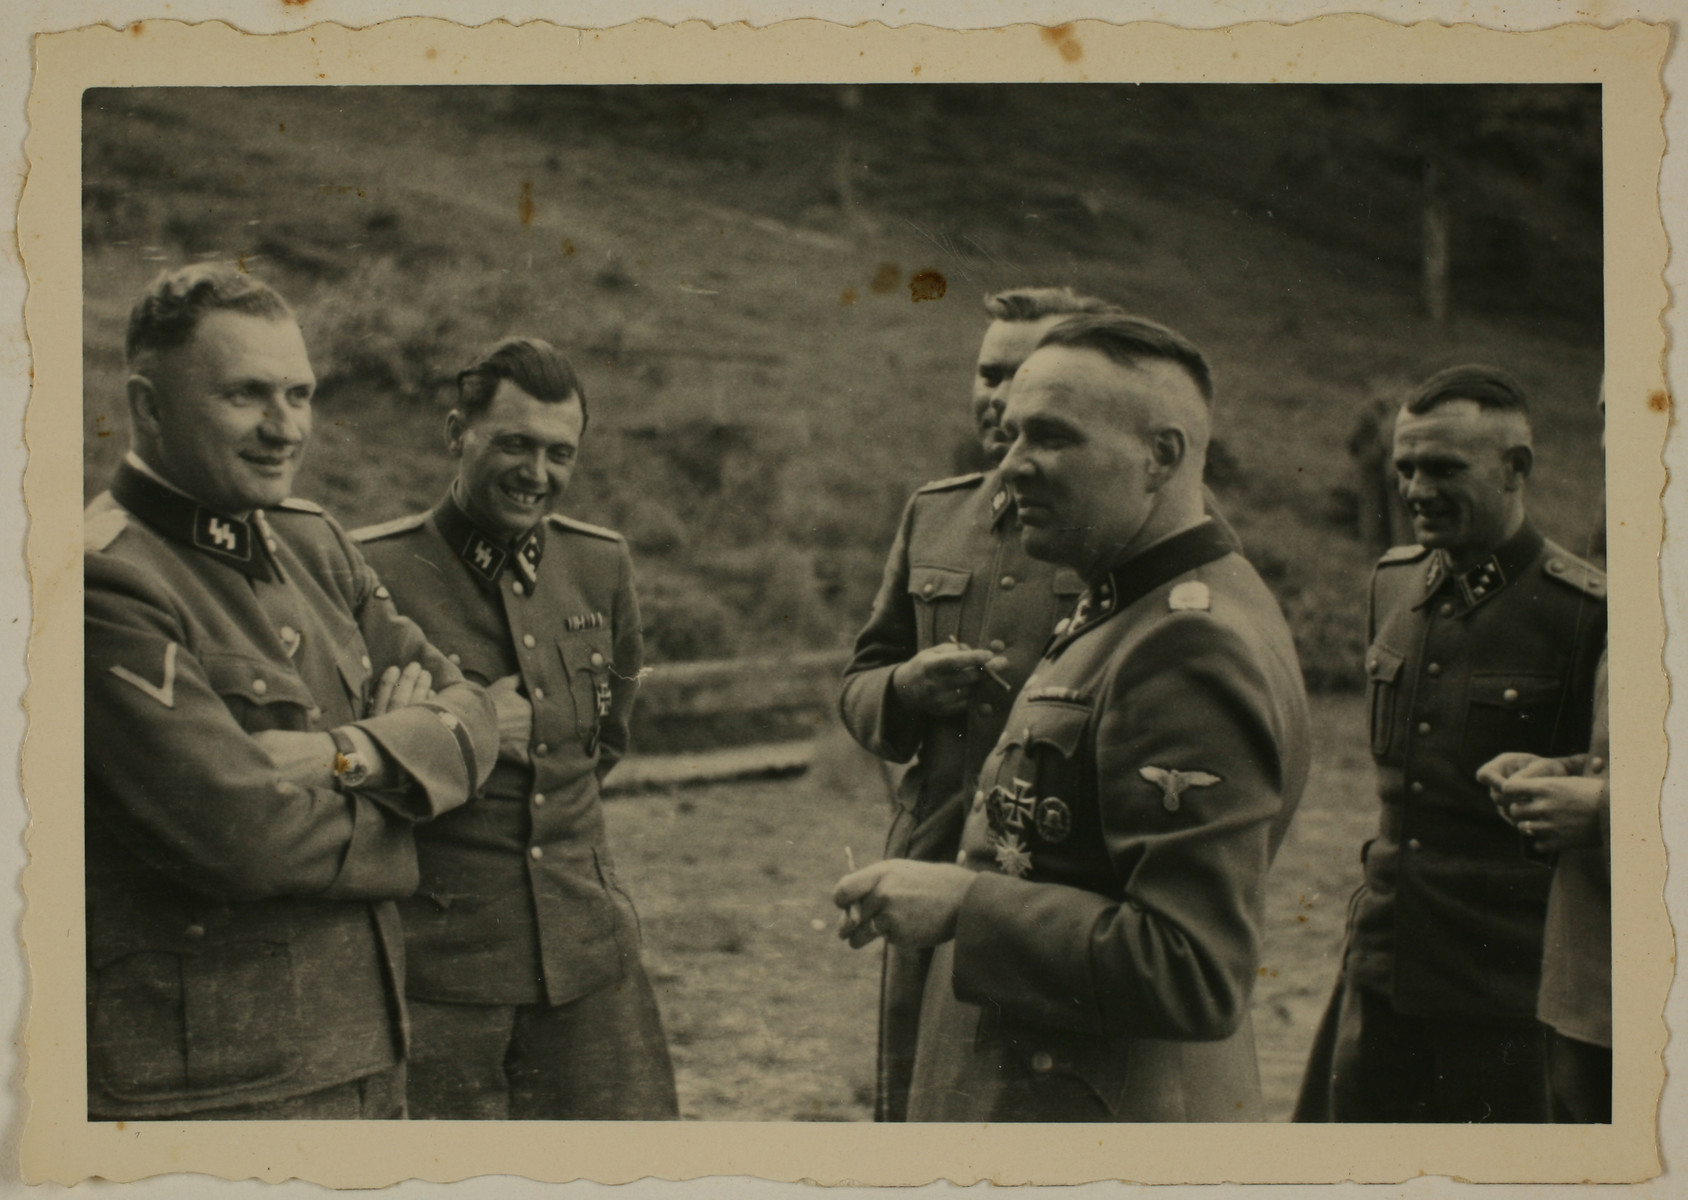 SS officers socialize in their retreat at Solahuette outside of Auschwitz.  From left to right are Richard Baer, Josef Mengele, Josef Kramer, Rudolf Hoess and Anton Thumann.  [Based on the officers visiting Solahutte, we surmise that the photographs were taken to honor Rudolf Hoess who completed his tenure as garrison senior on July 29.]